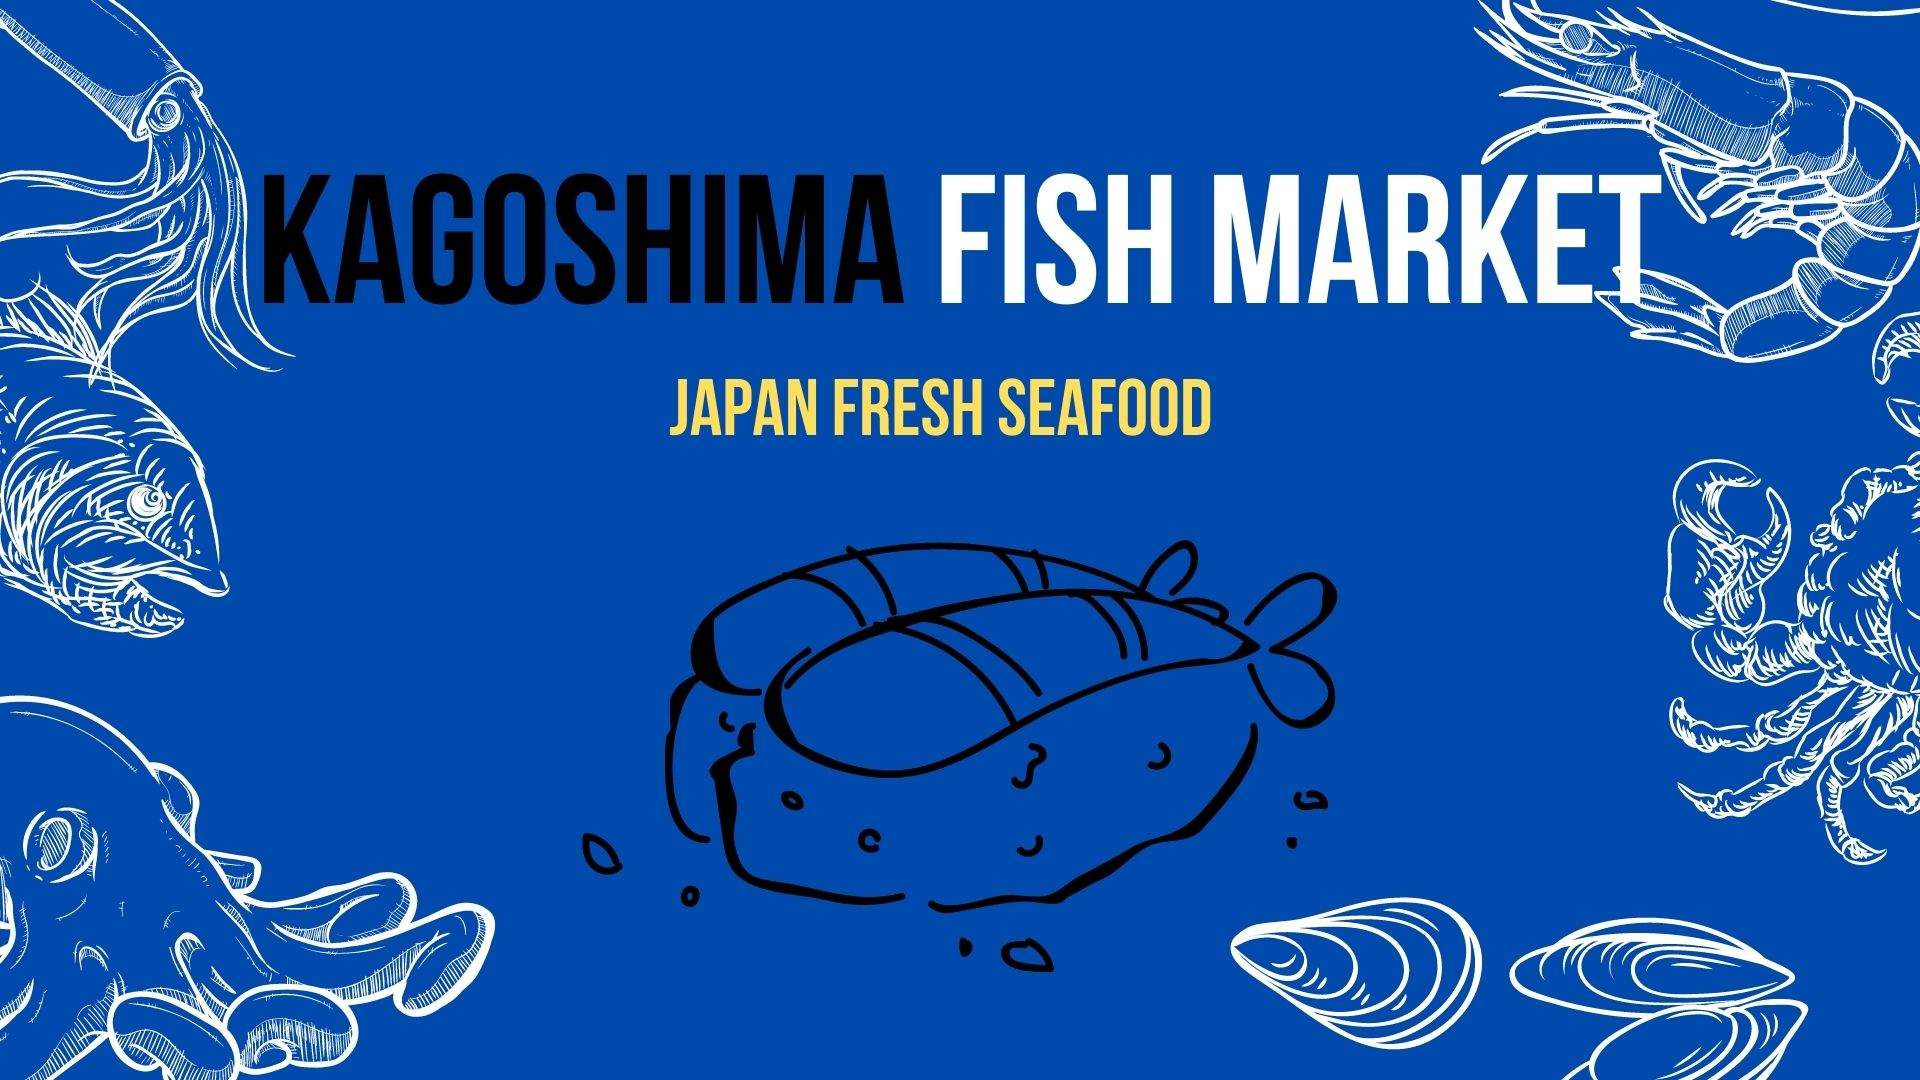 Kagoshima Fish Market – Taste the Freshness from The Early Catch